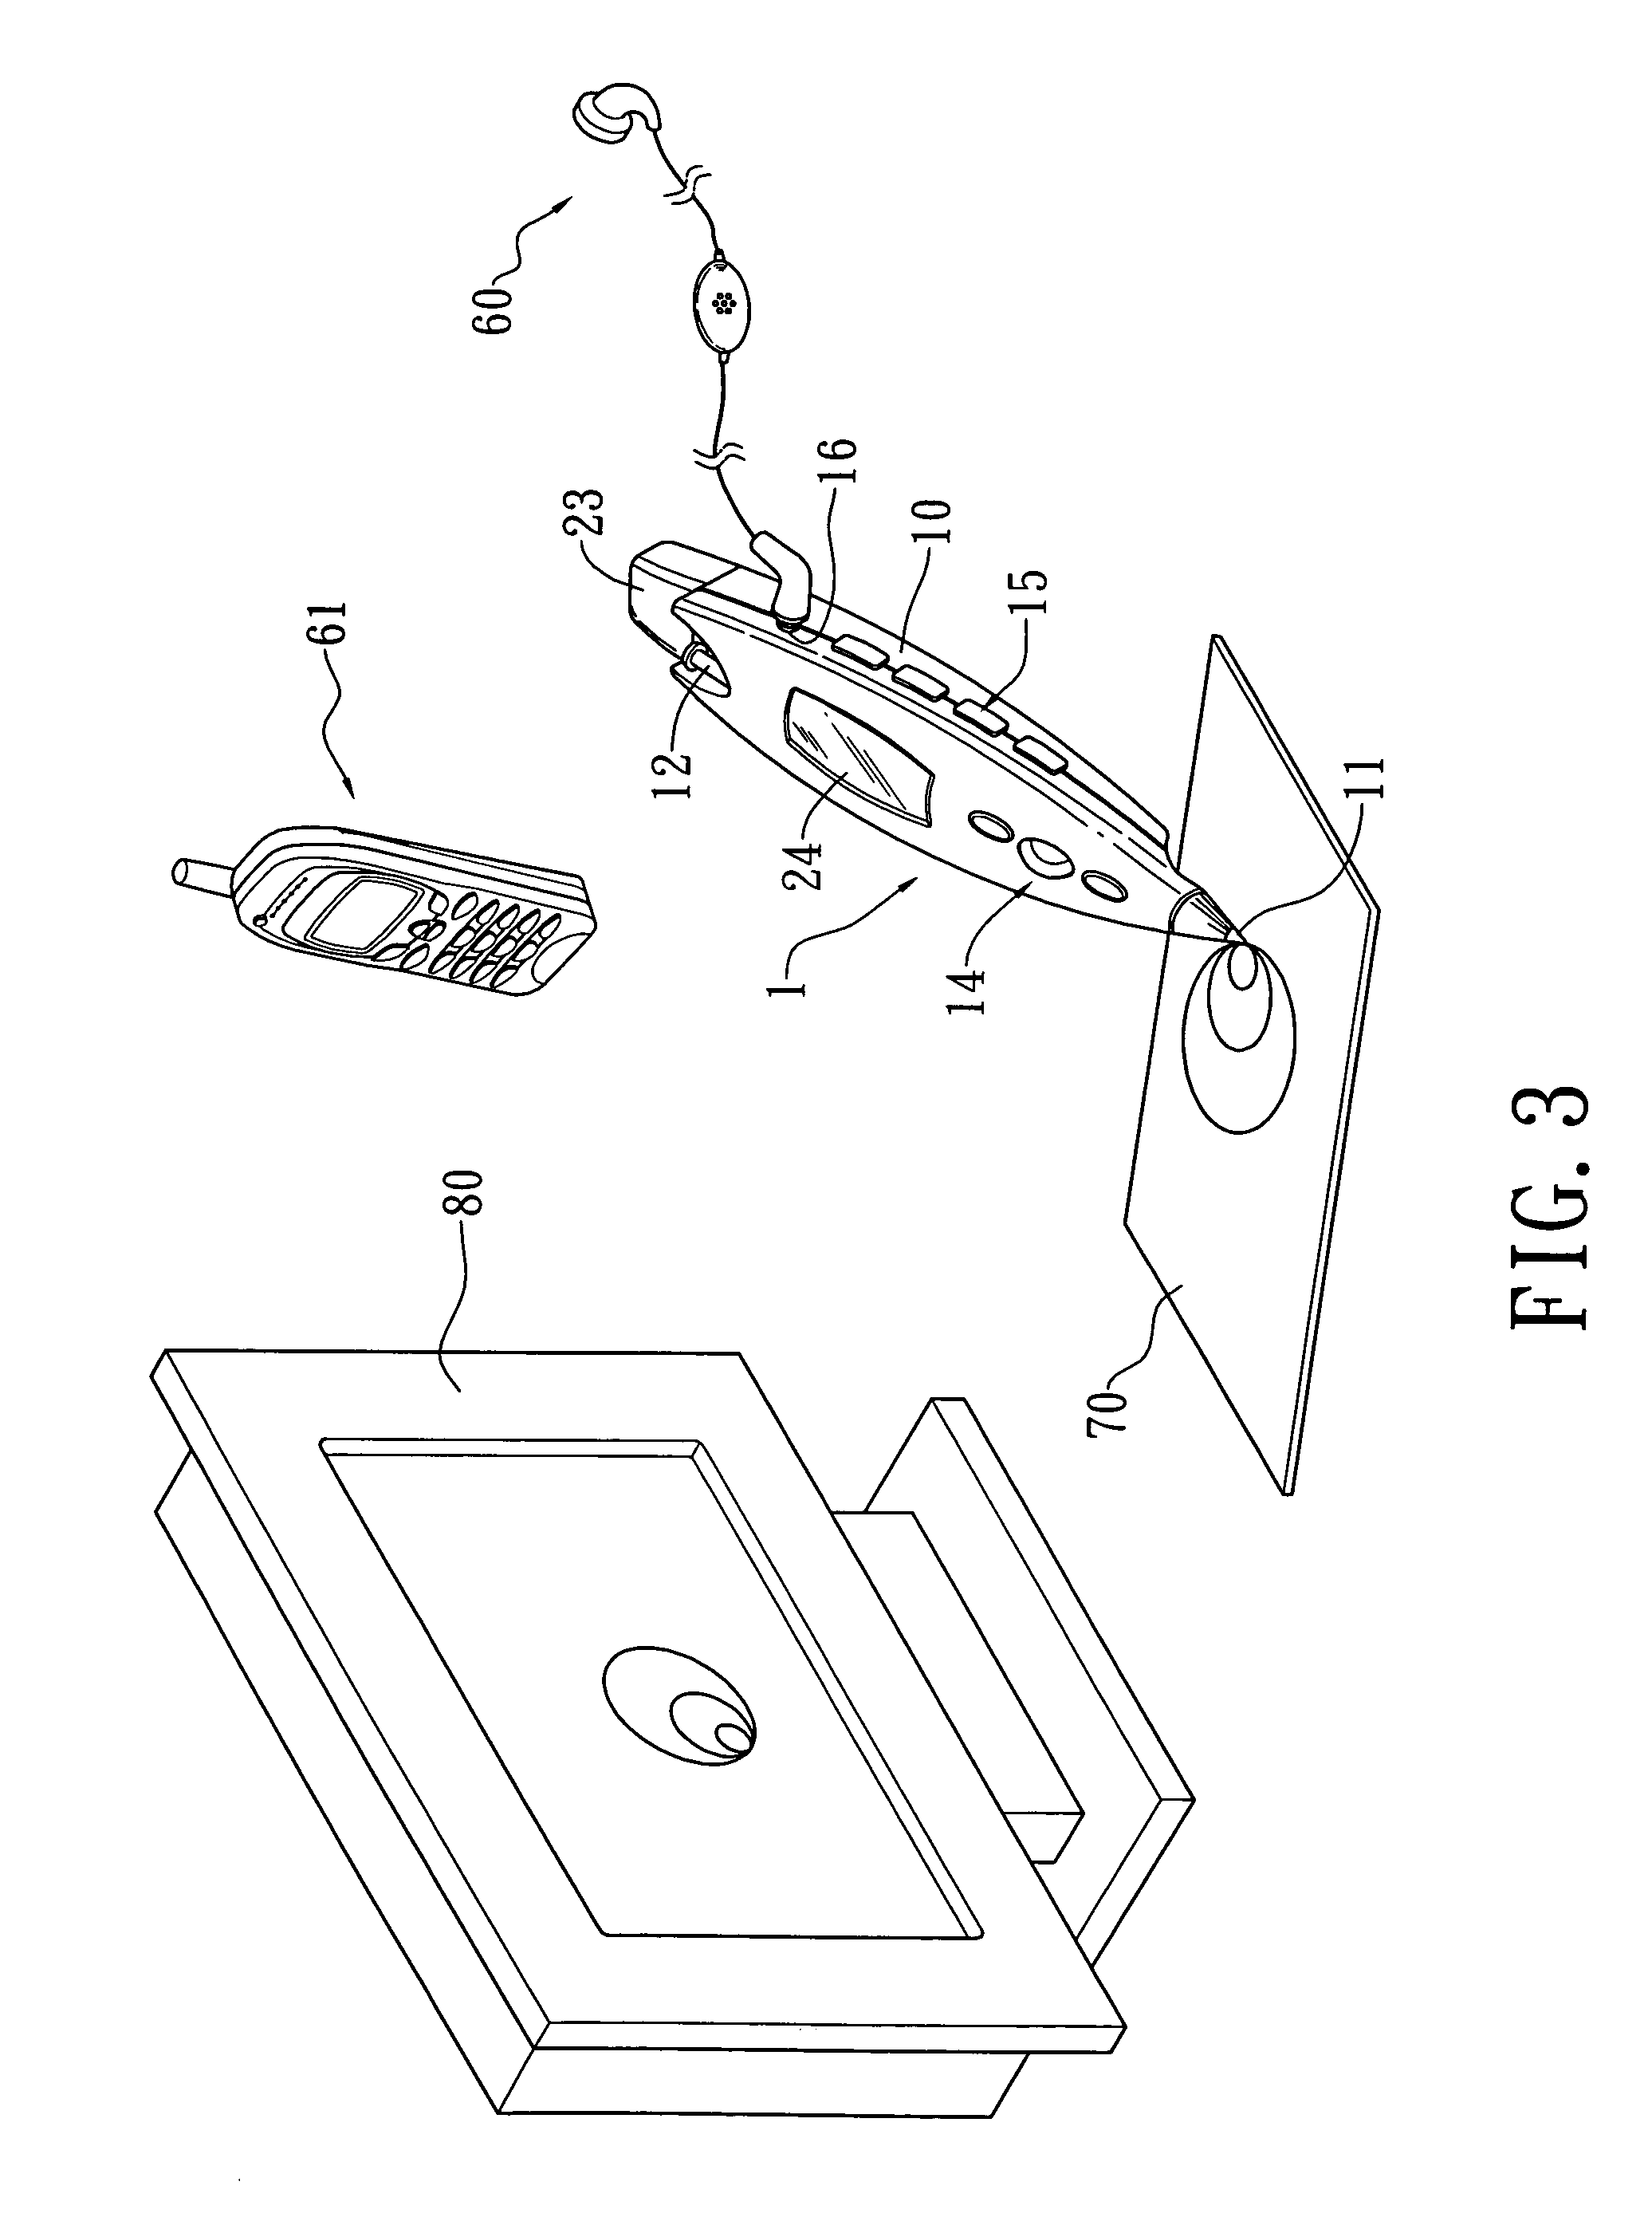 patent us20060109262 - structure of mouse pen